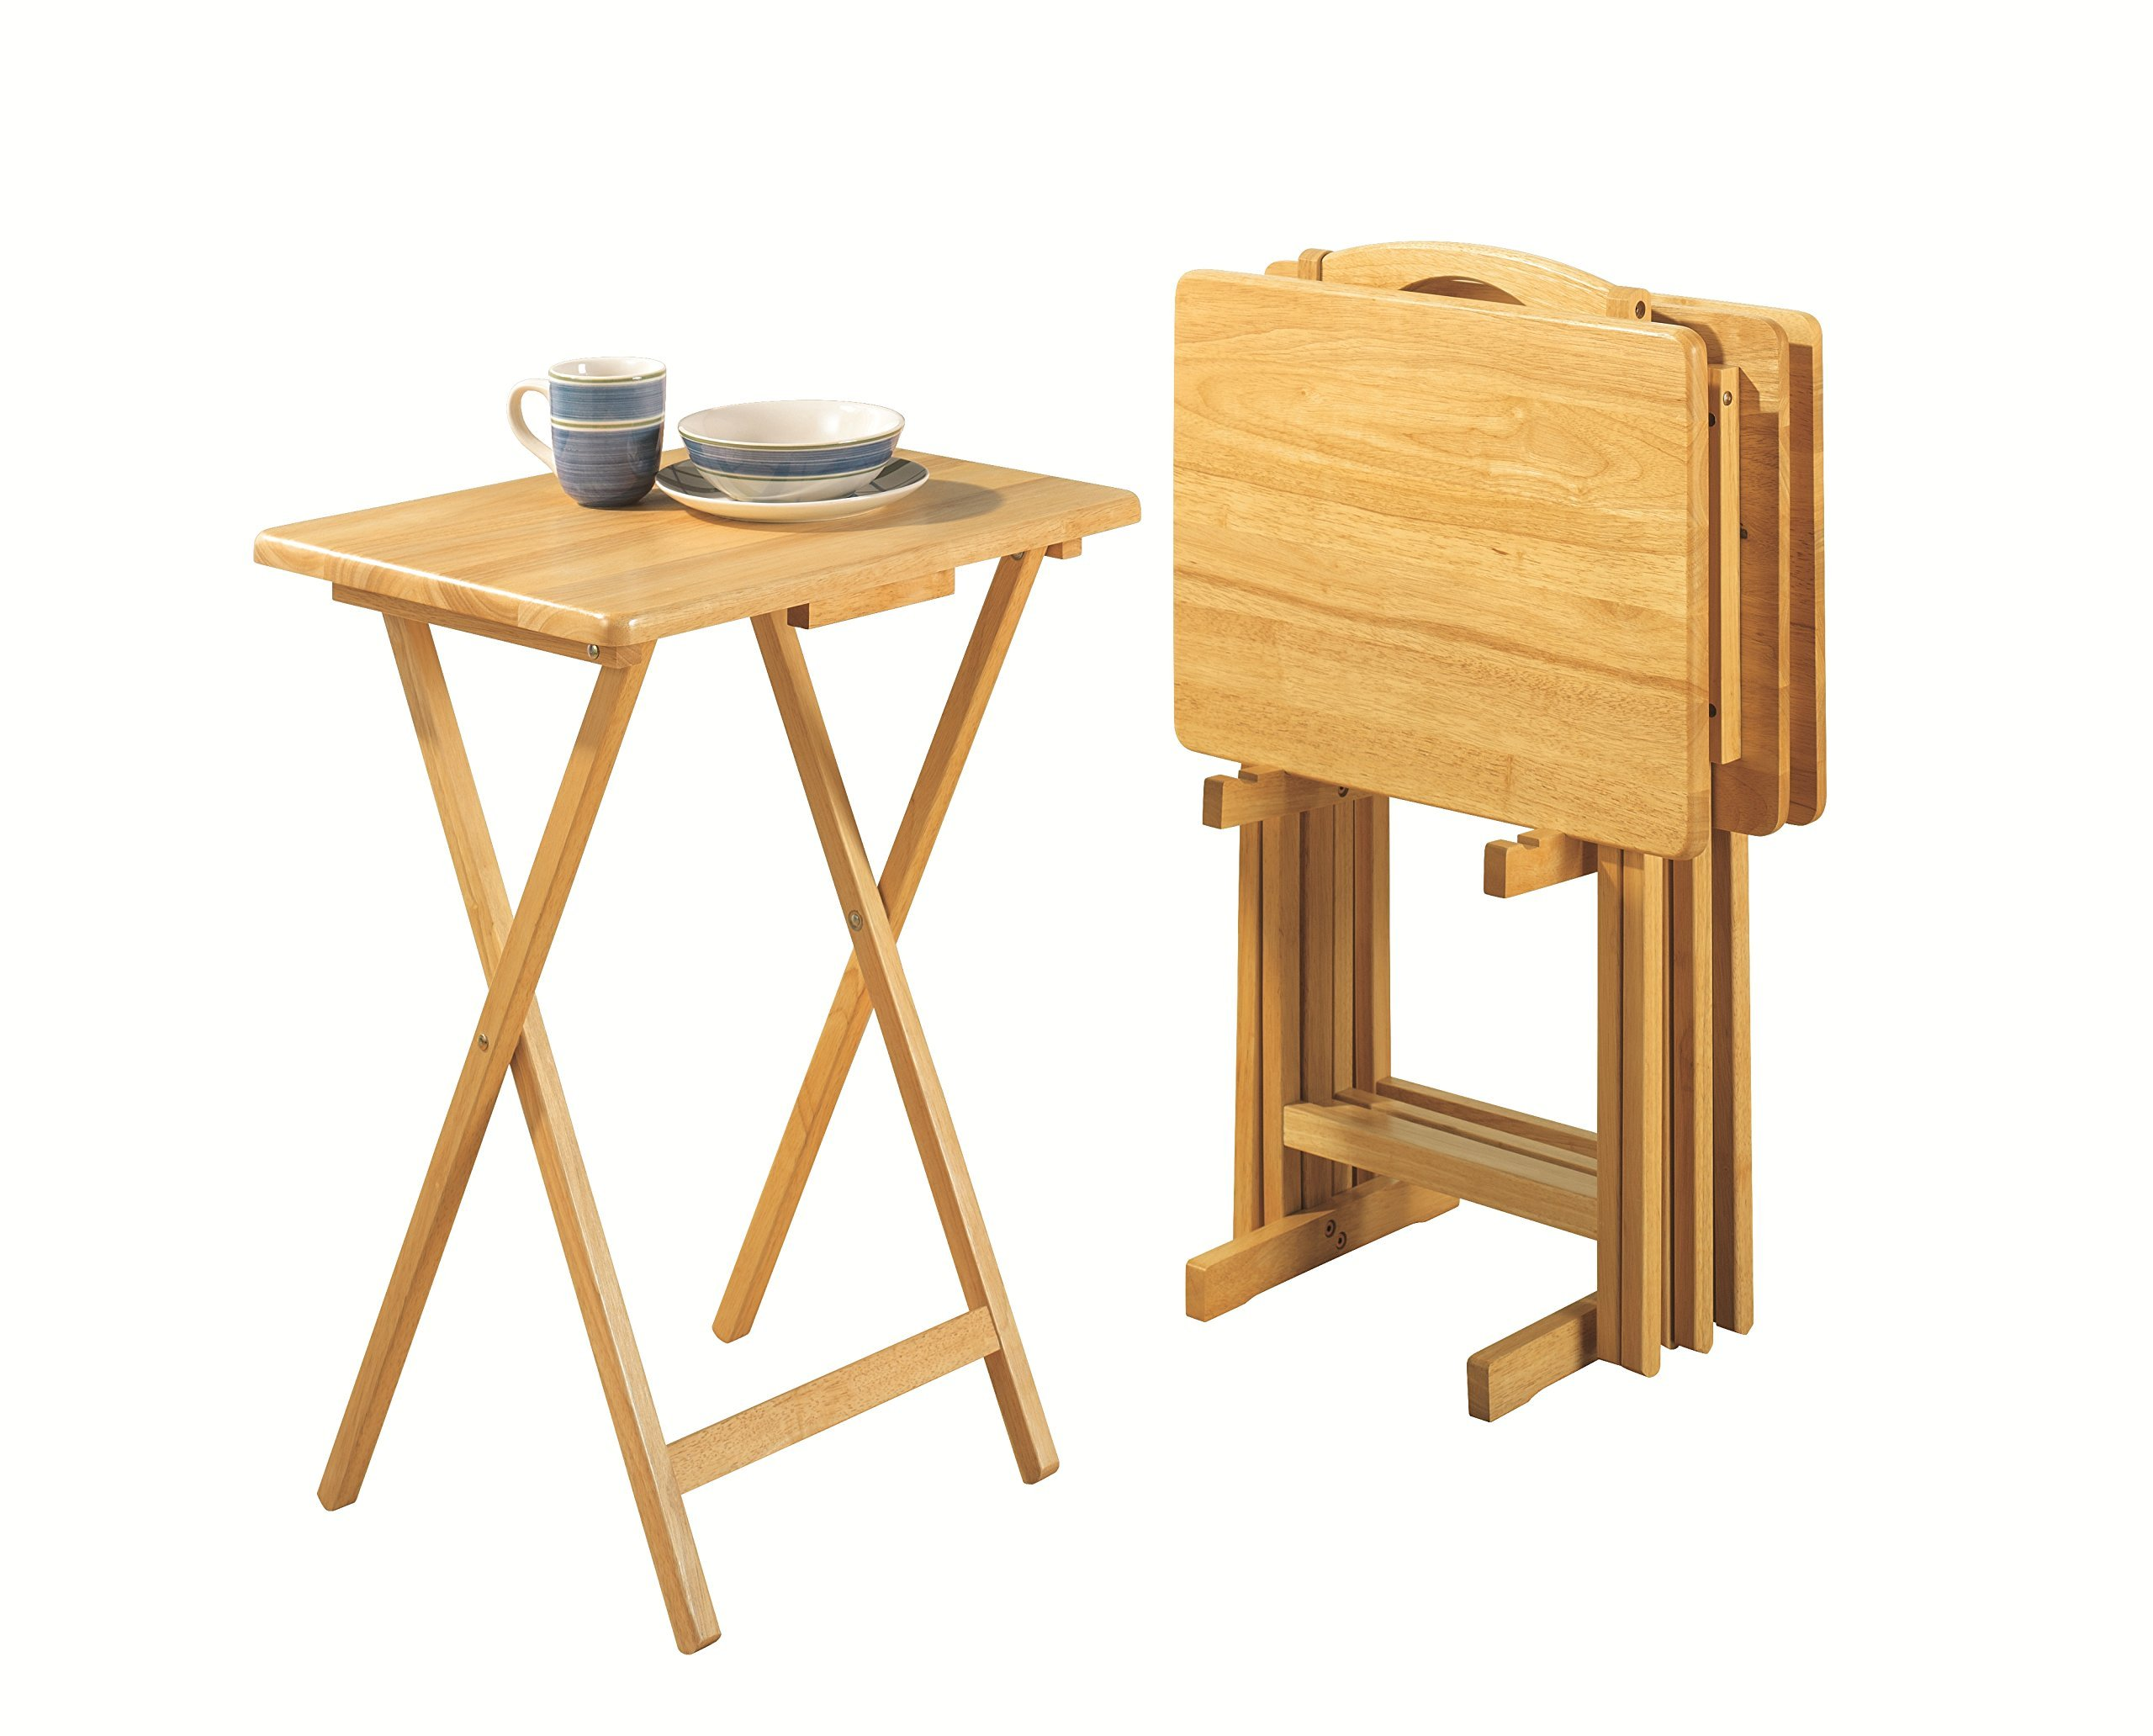 PJ Wood 5-piece Folding TV Tray & Snack Table - Natural Finish Rubberwood